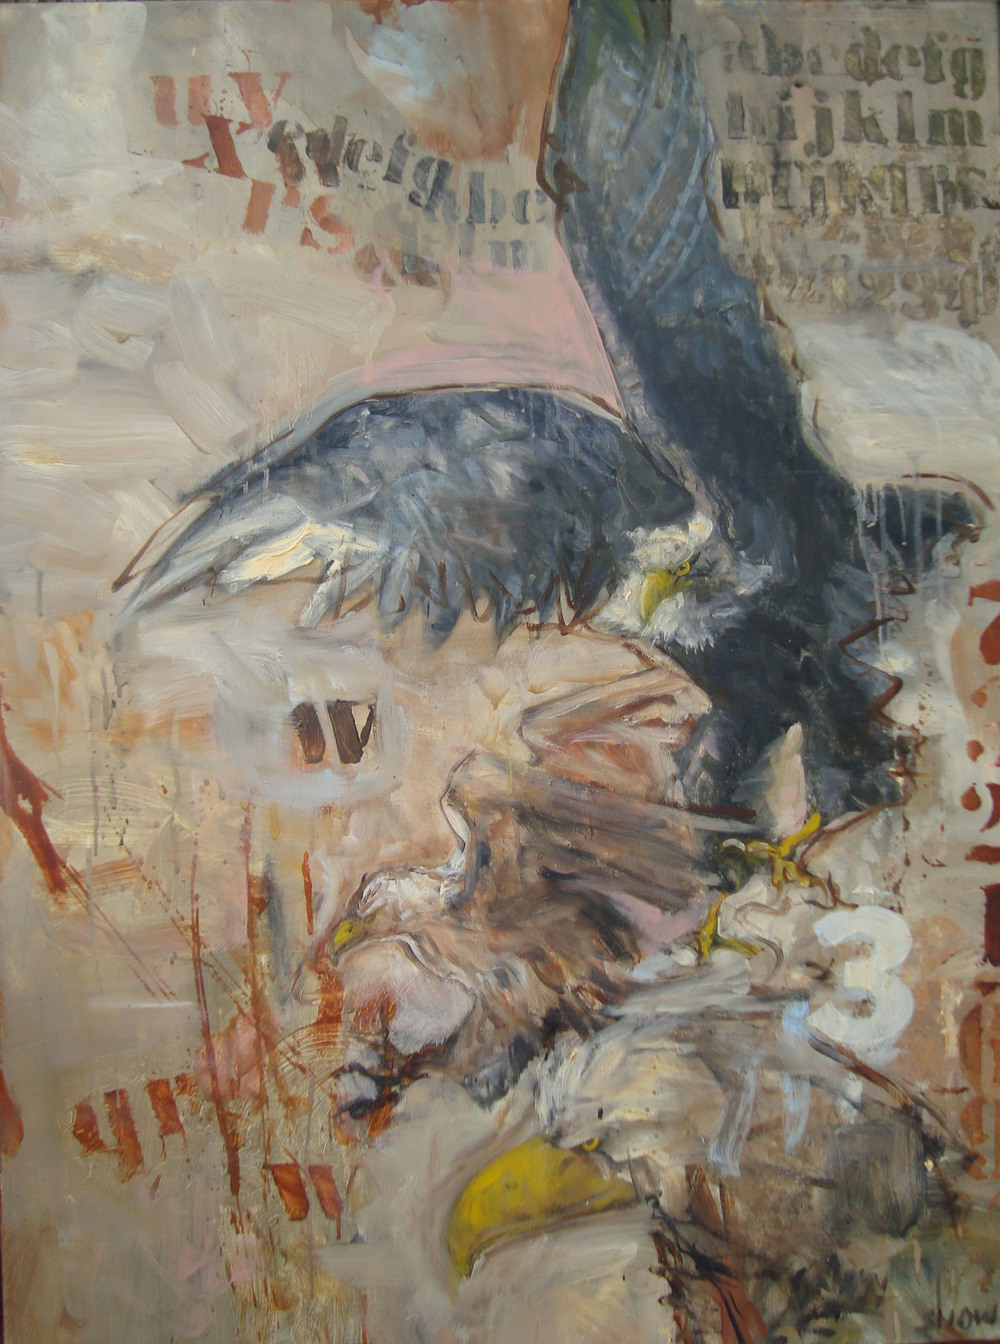 MATTHEW+cropped_eagle_painting.jpg